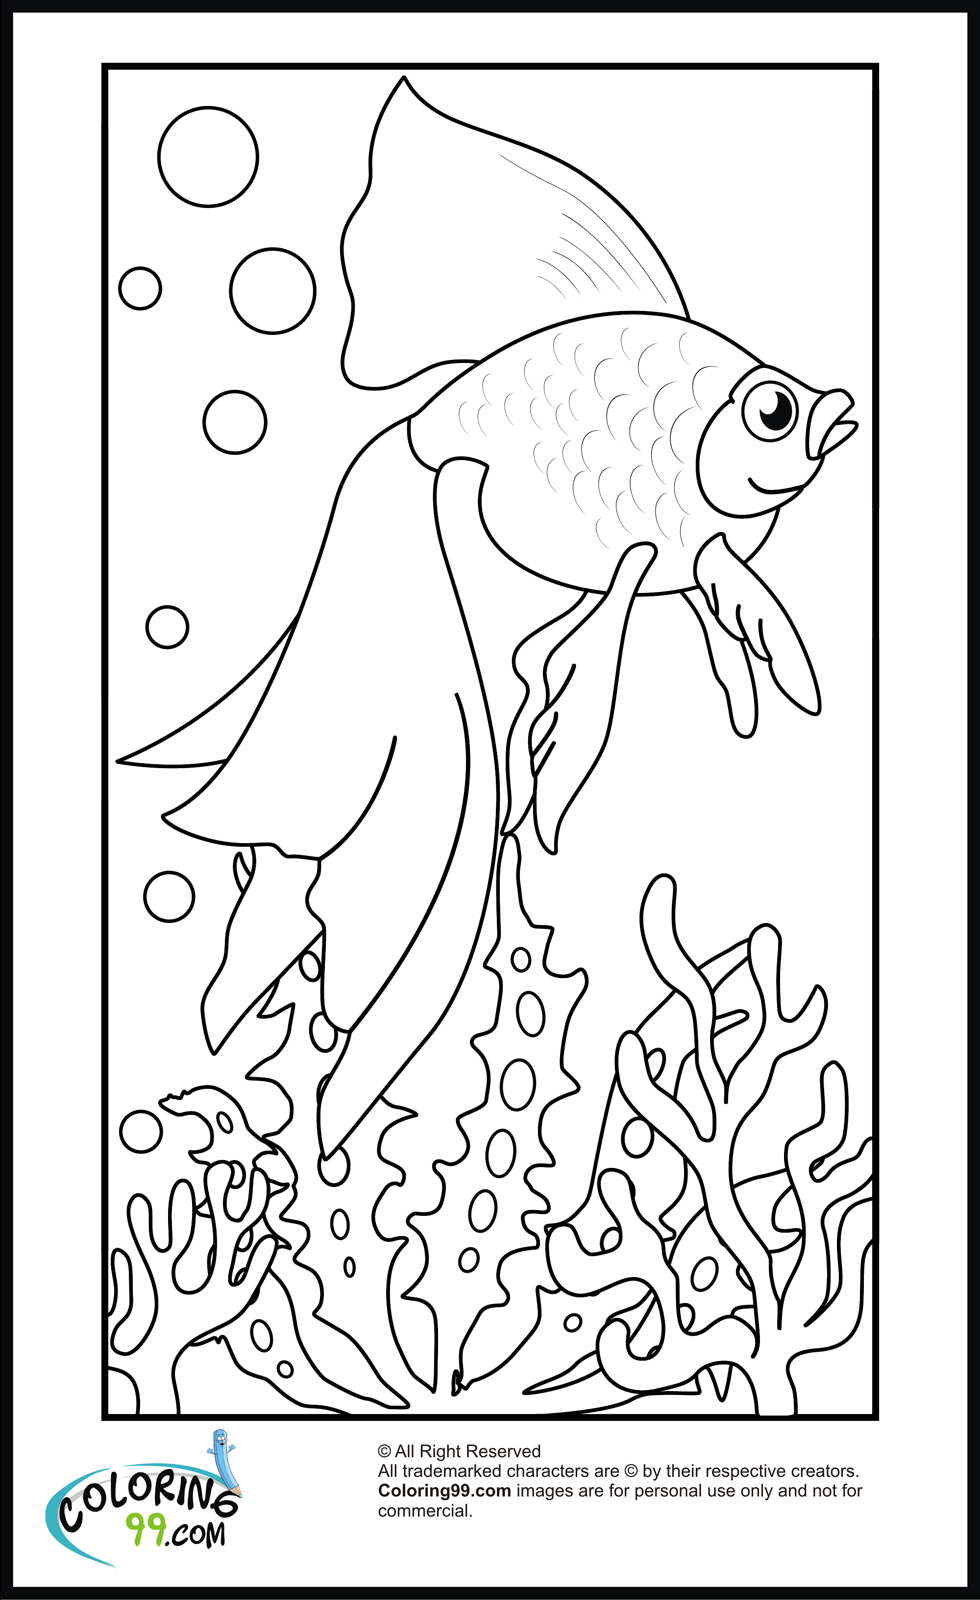 Goldfish Coloring Pages | Minister Coloring | colouring pages online printable